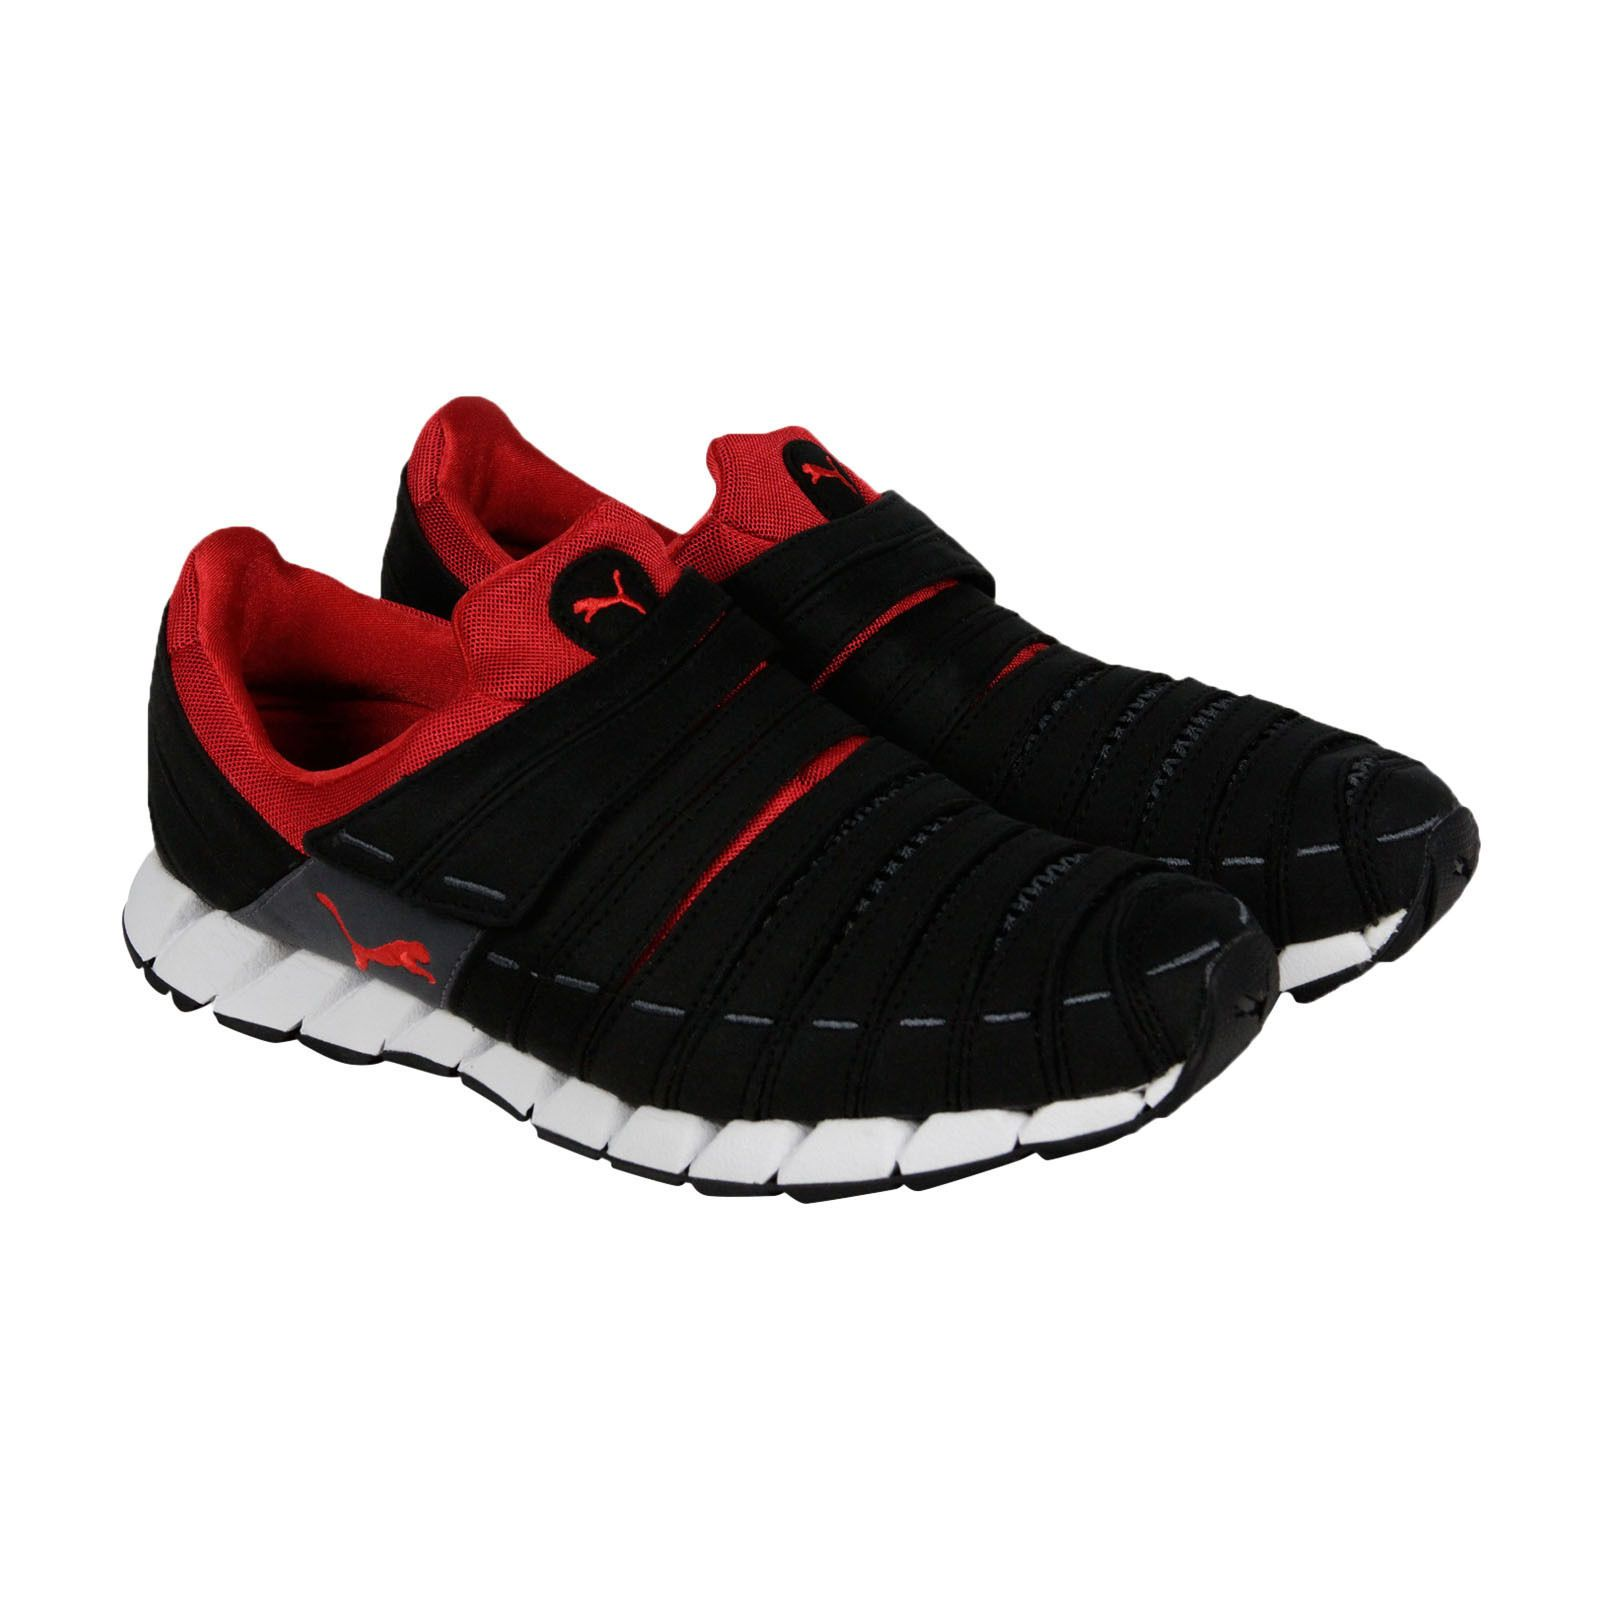 Puma Osu NM Mens Black Red Synthetic Athletic Slip On Running Shoes ... 0fee360a4